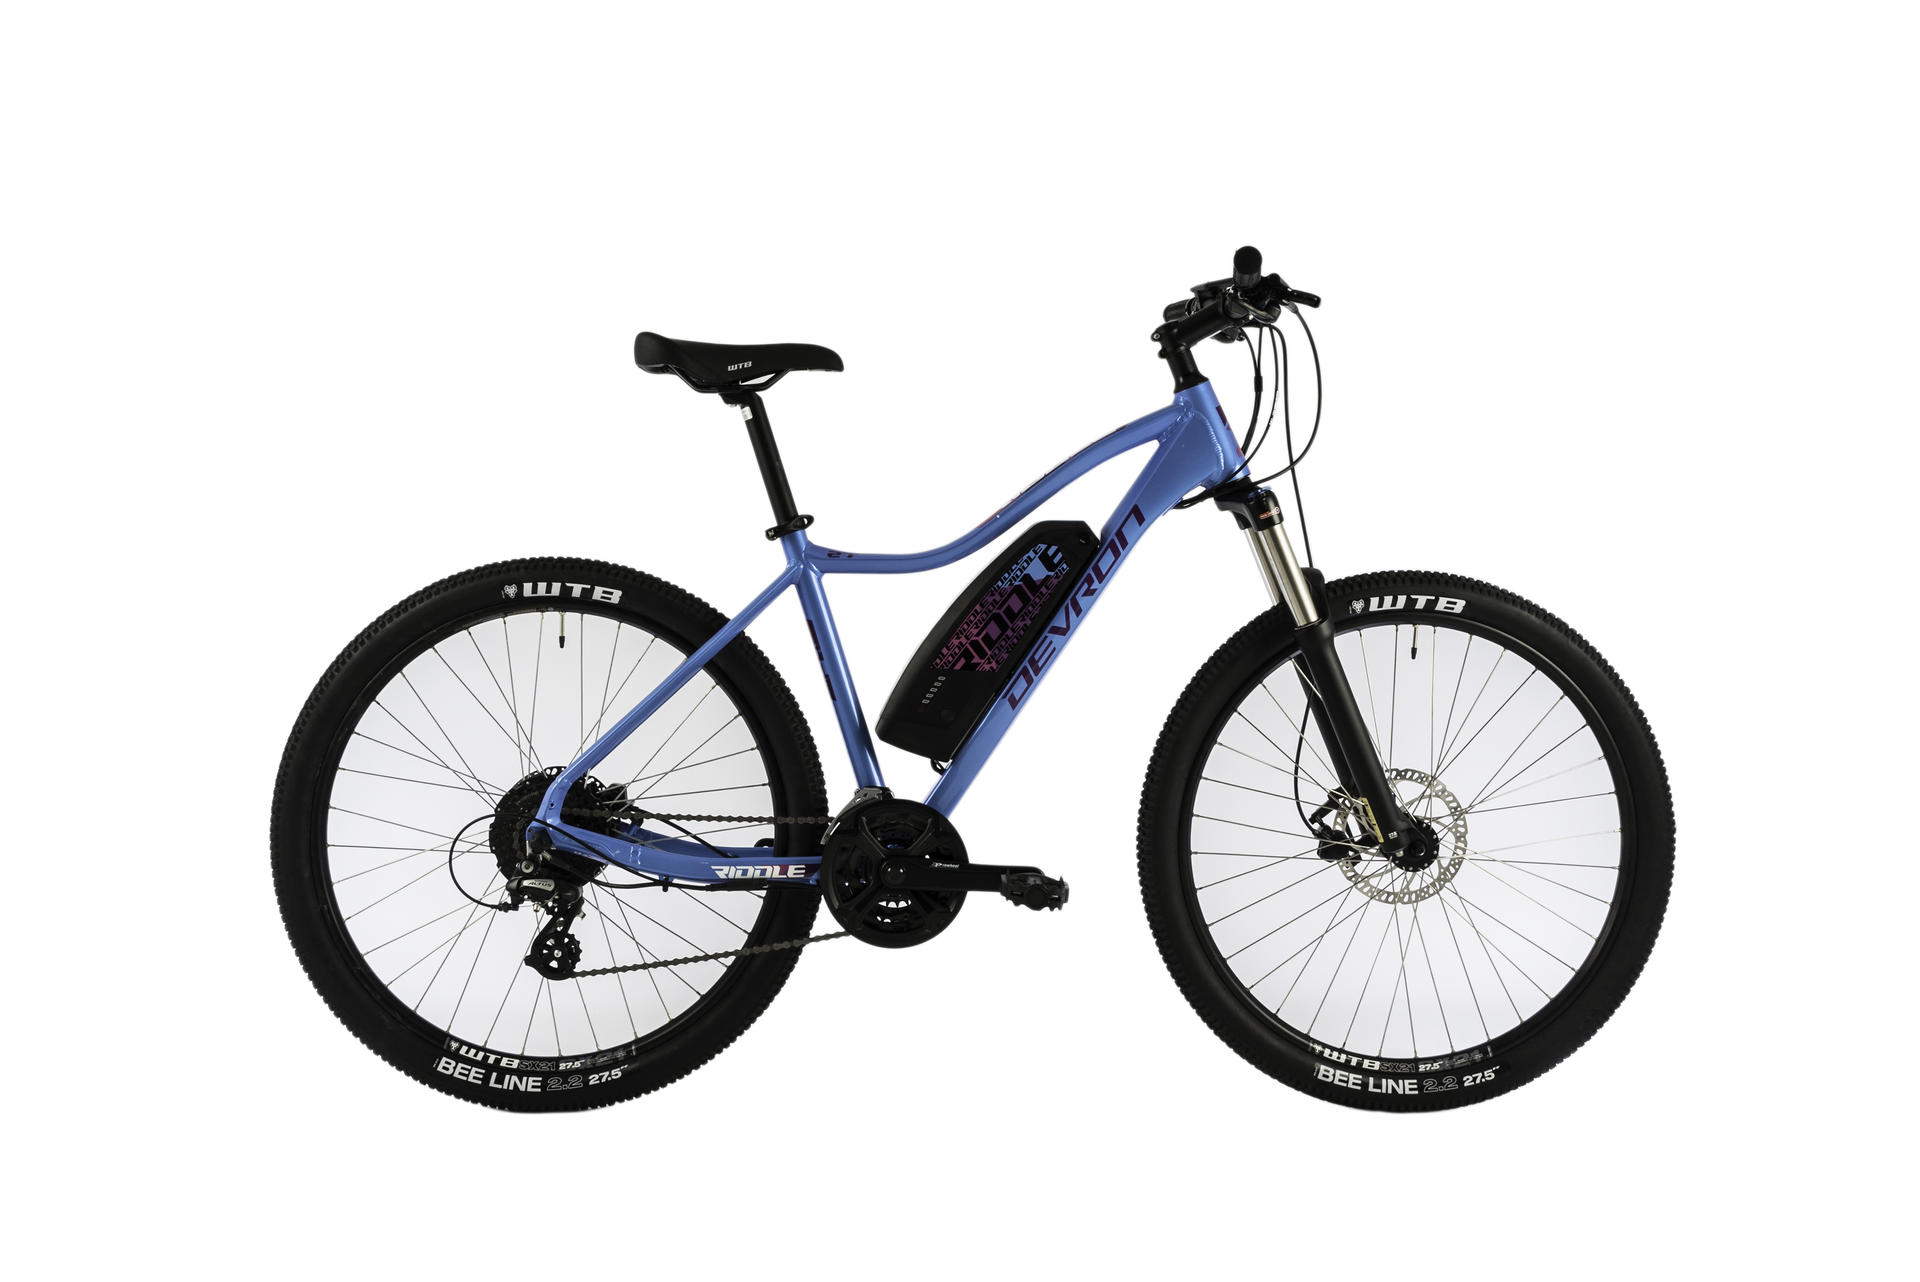 Mountain bike elettrica da donna Devron Riddle W1.7 457mm Blue -27